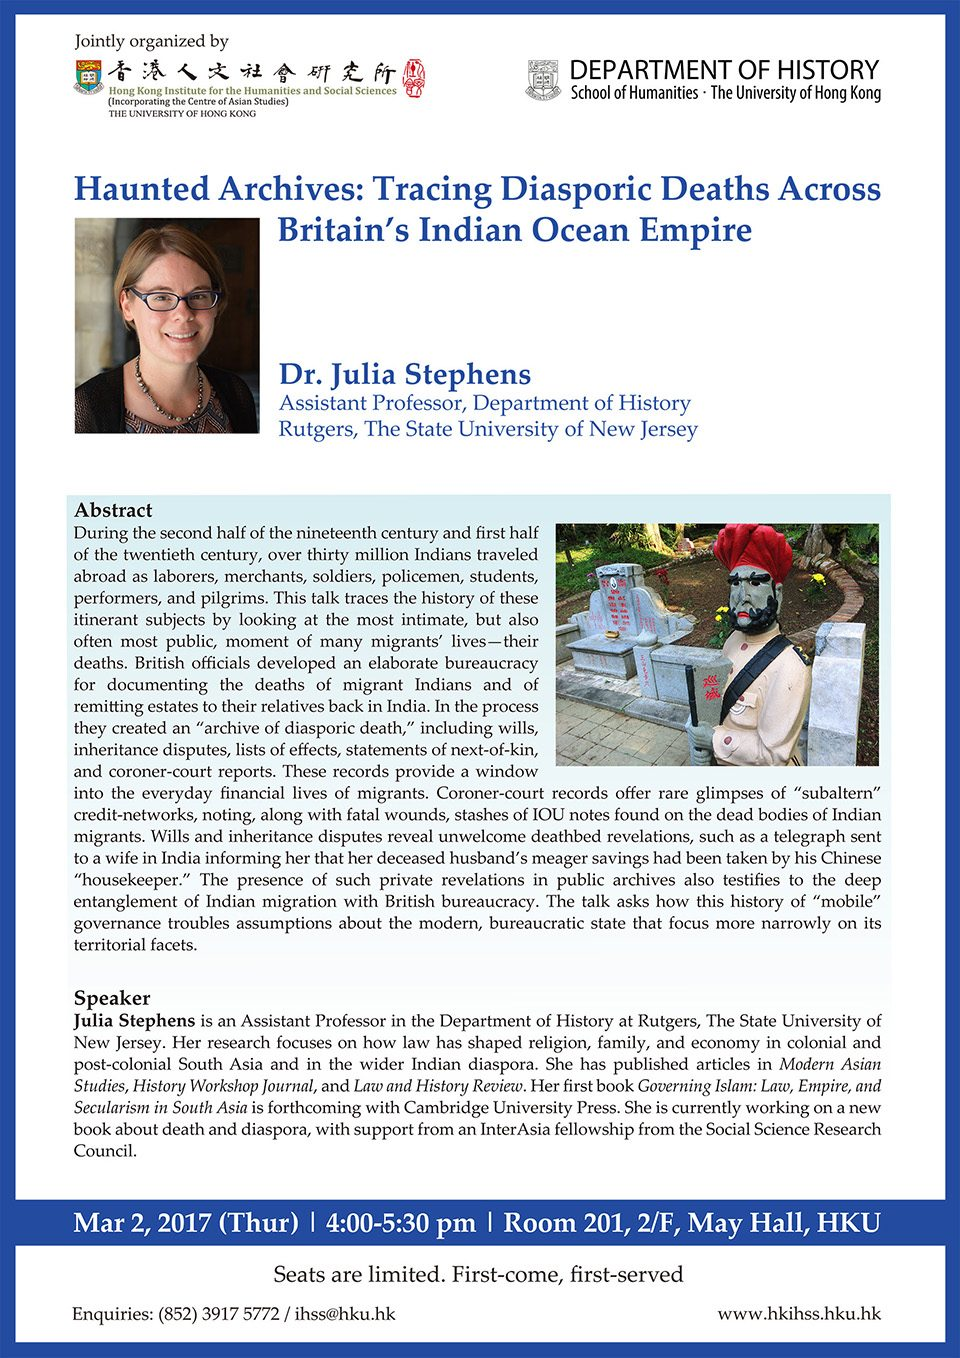 """Haunted Archives: Tracing Diasporic Deaths Across Britain's Indian Ocean Empire"" by Dr. Julia Stephens (March 2, 2017)"